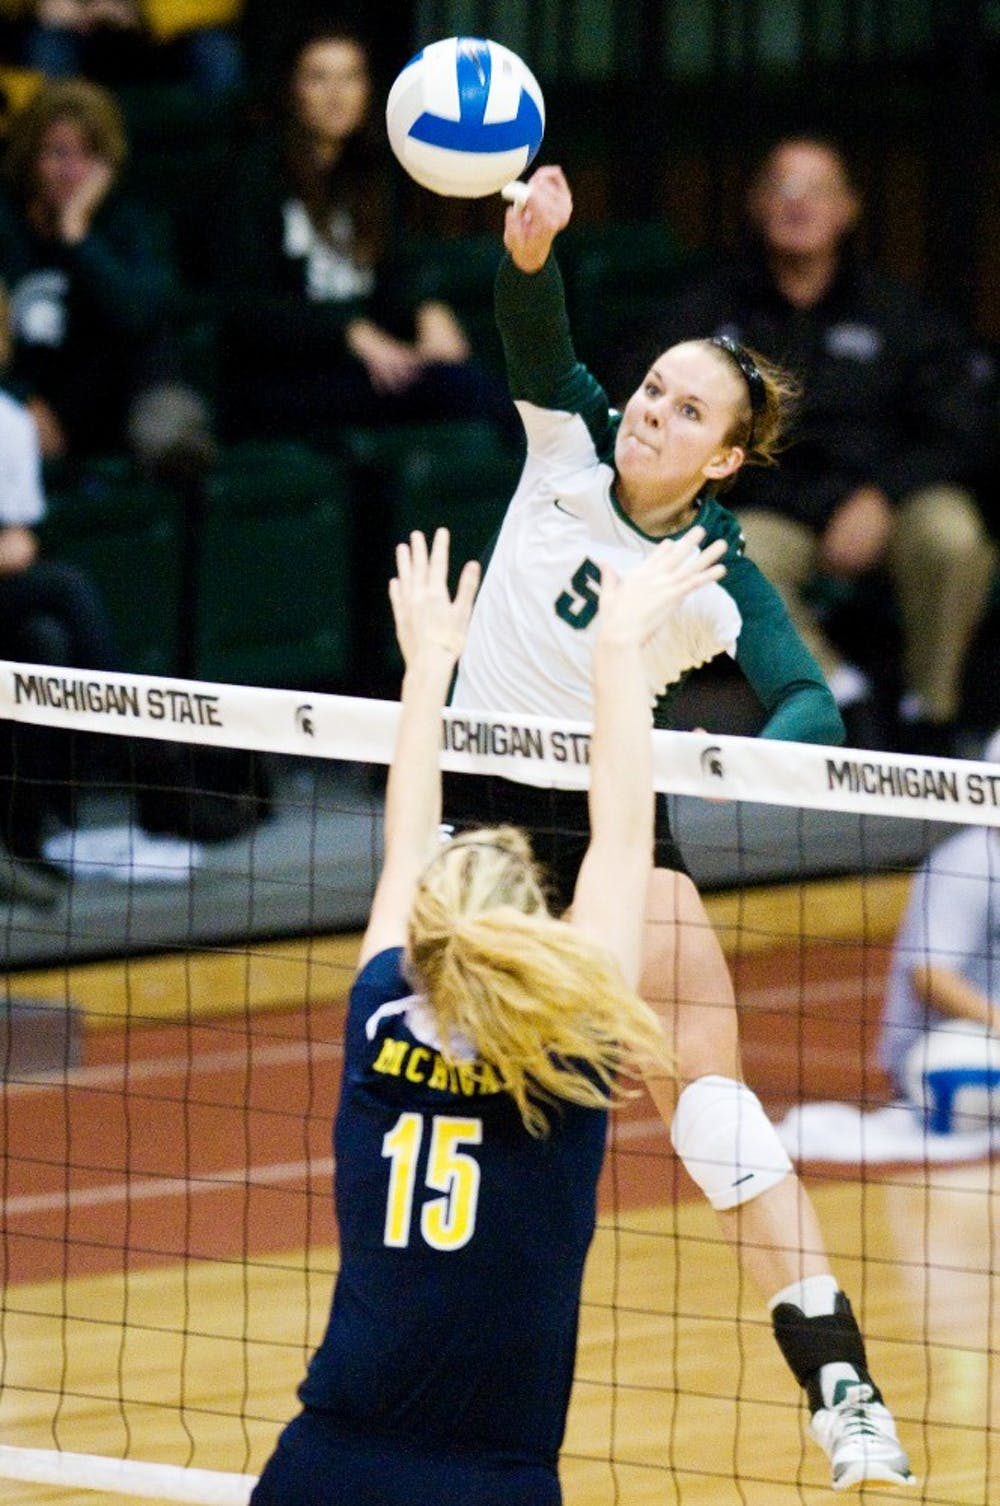 Senior outside hitter Jenilee Rathje hits the ball over Michigan middle blocker Courtney Fletcher Wednesday at Jenison Field House. The Spartans defeated the Wolverines 3-1. Matt Radick/The State News